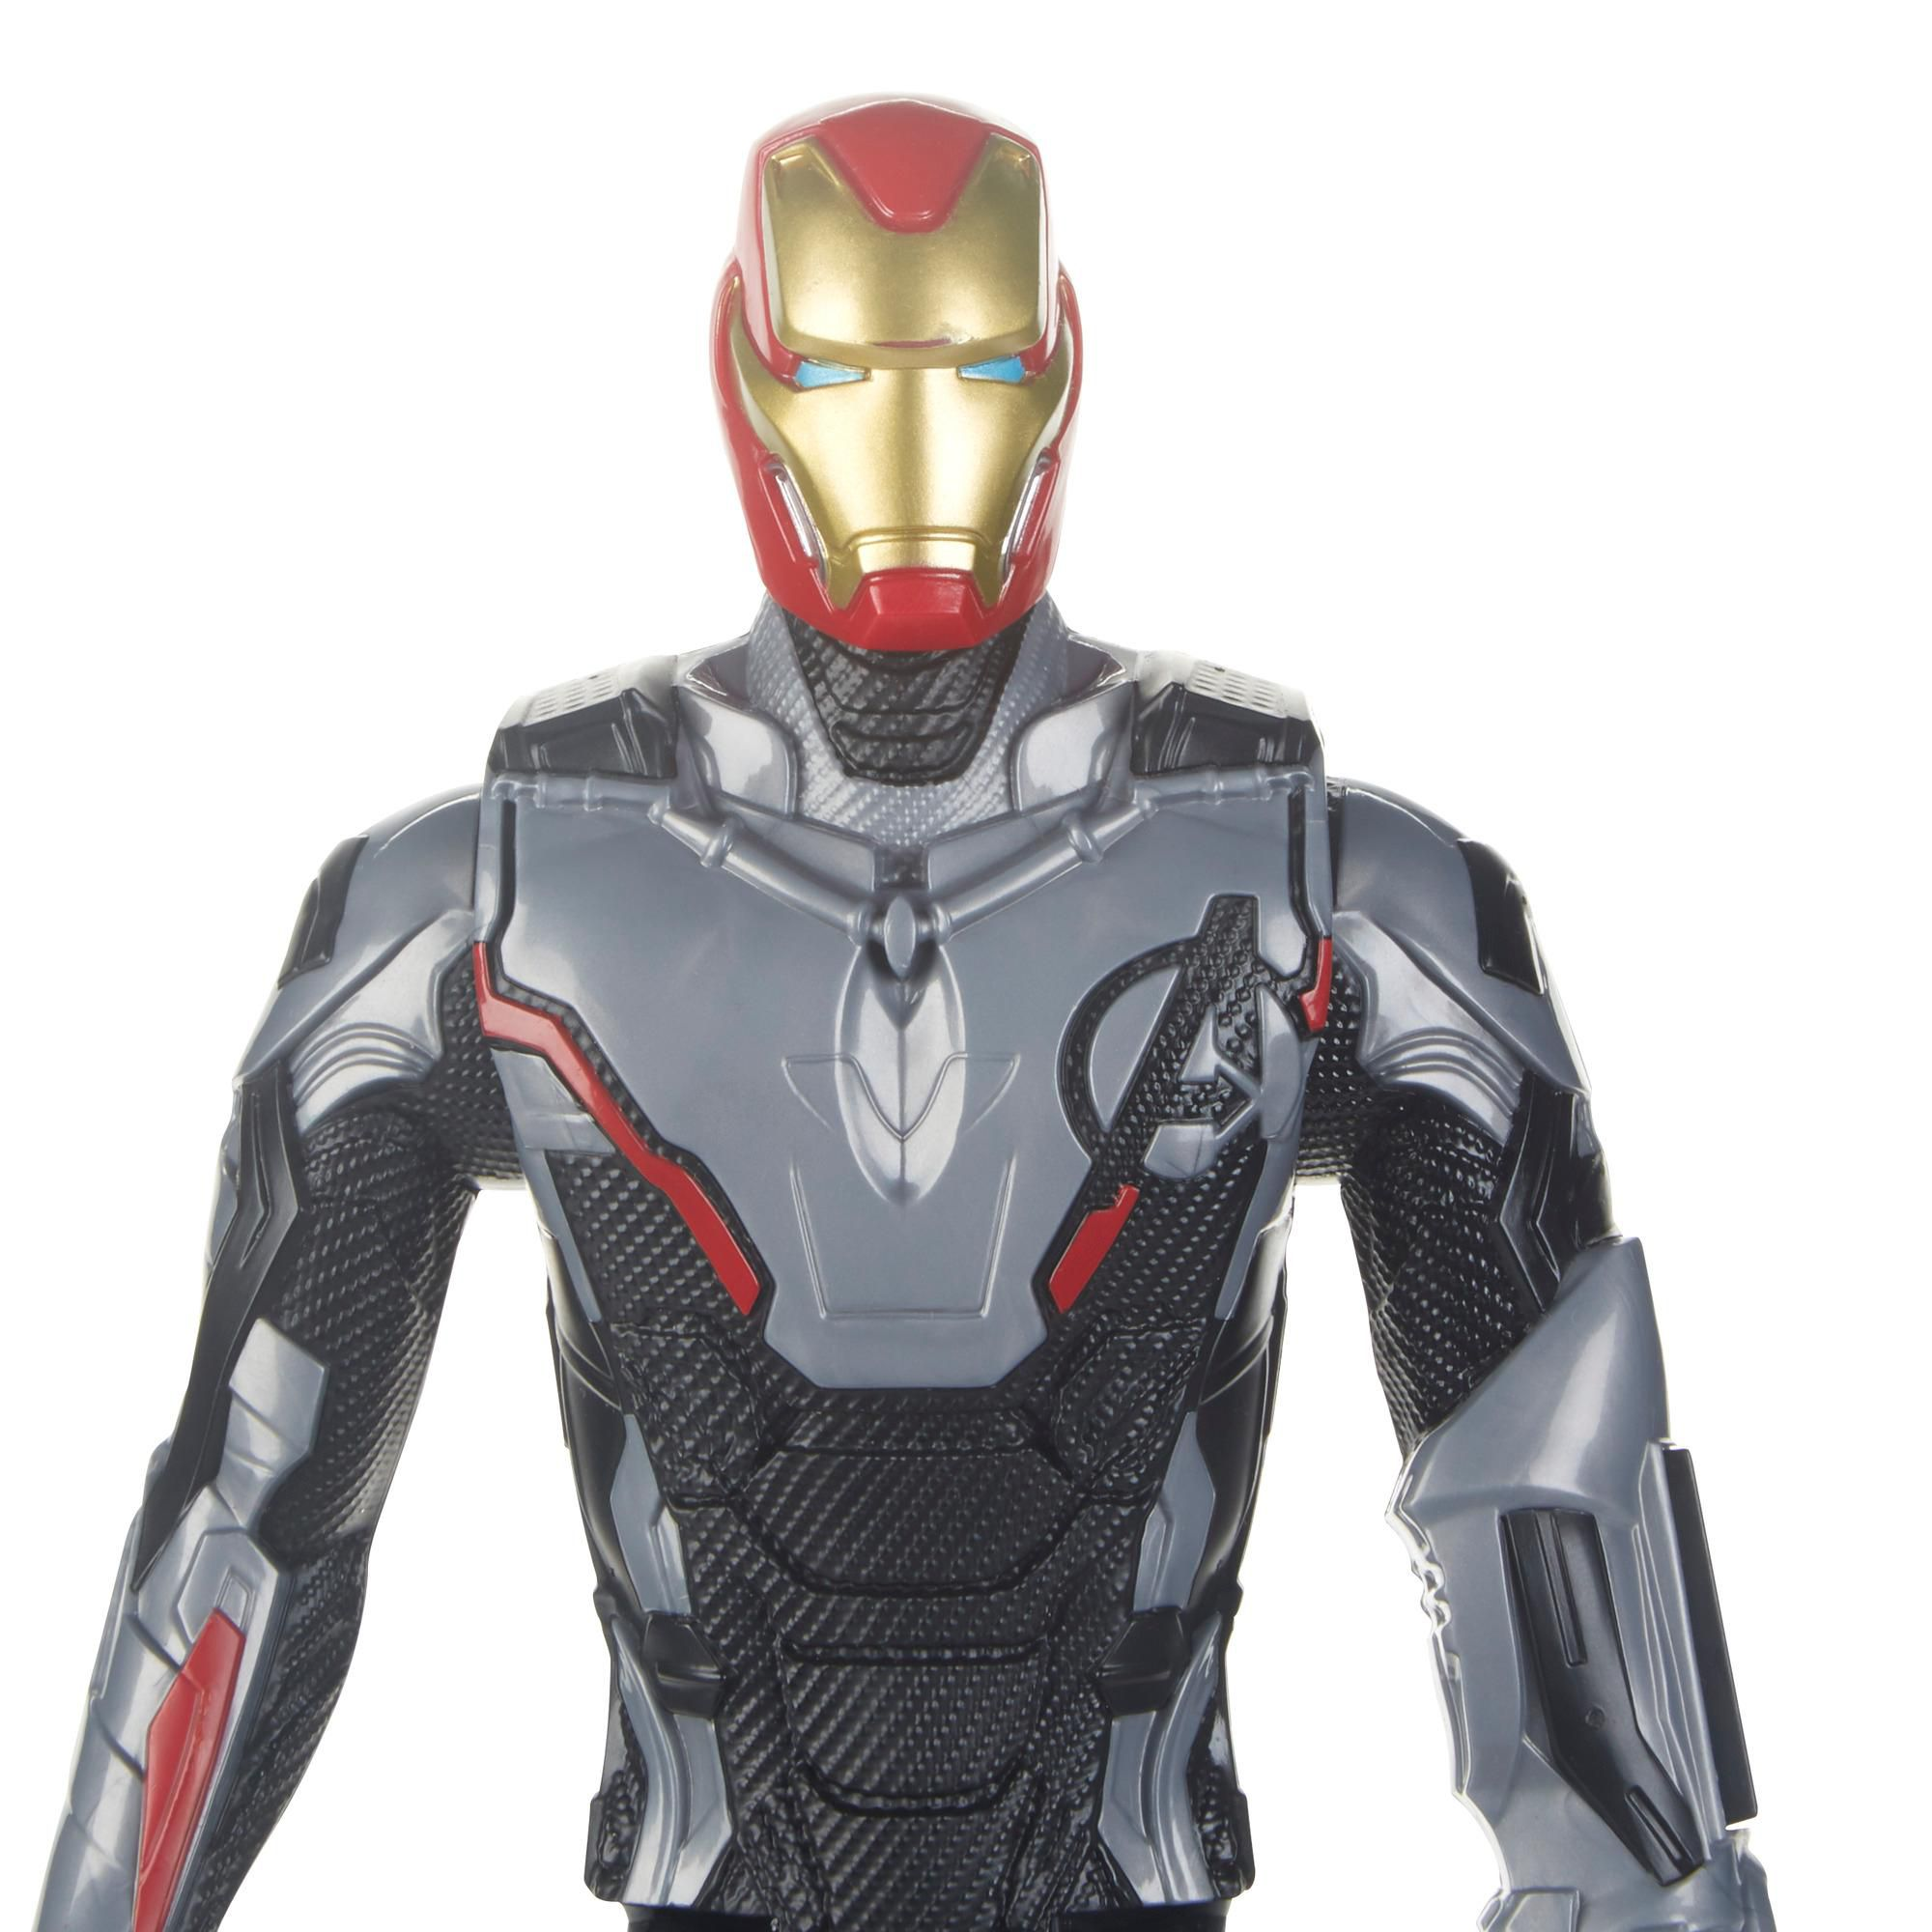 Marvel Avengers: Endgame- Titan Hero Power FX Homem de Ferro - Hasbro - E3298